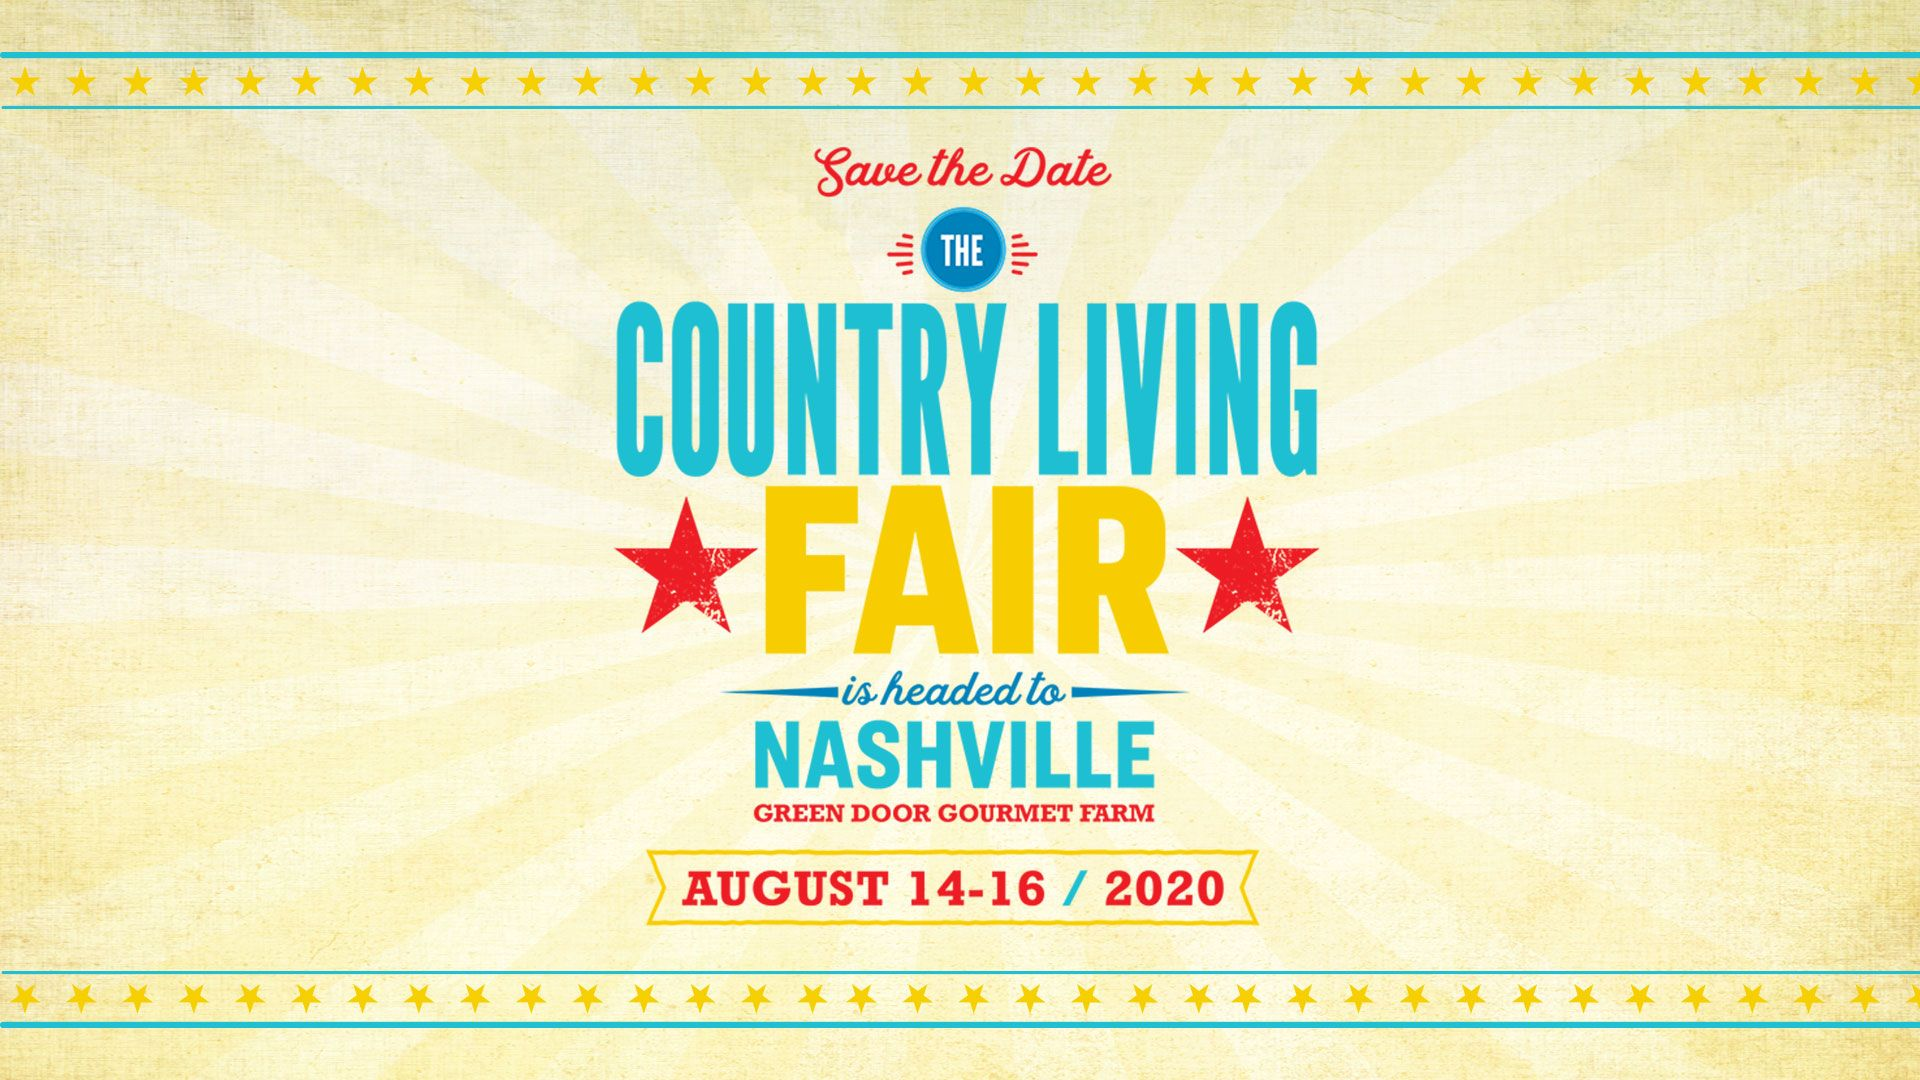 Everything You Need to Know About the 2020 Country Living Fair